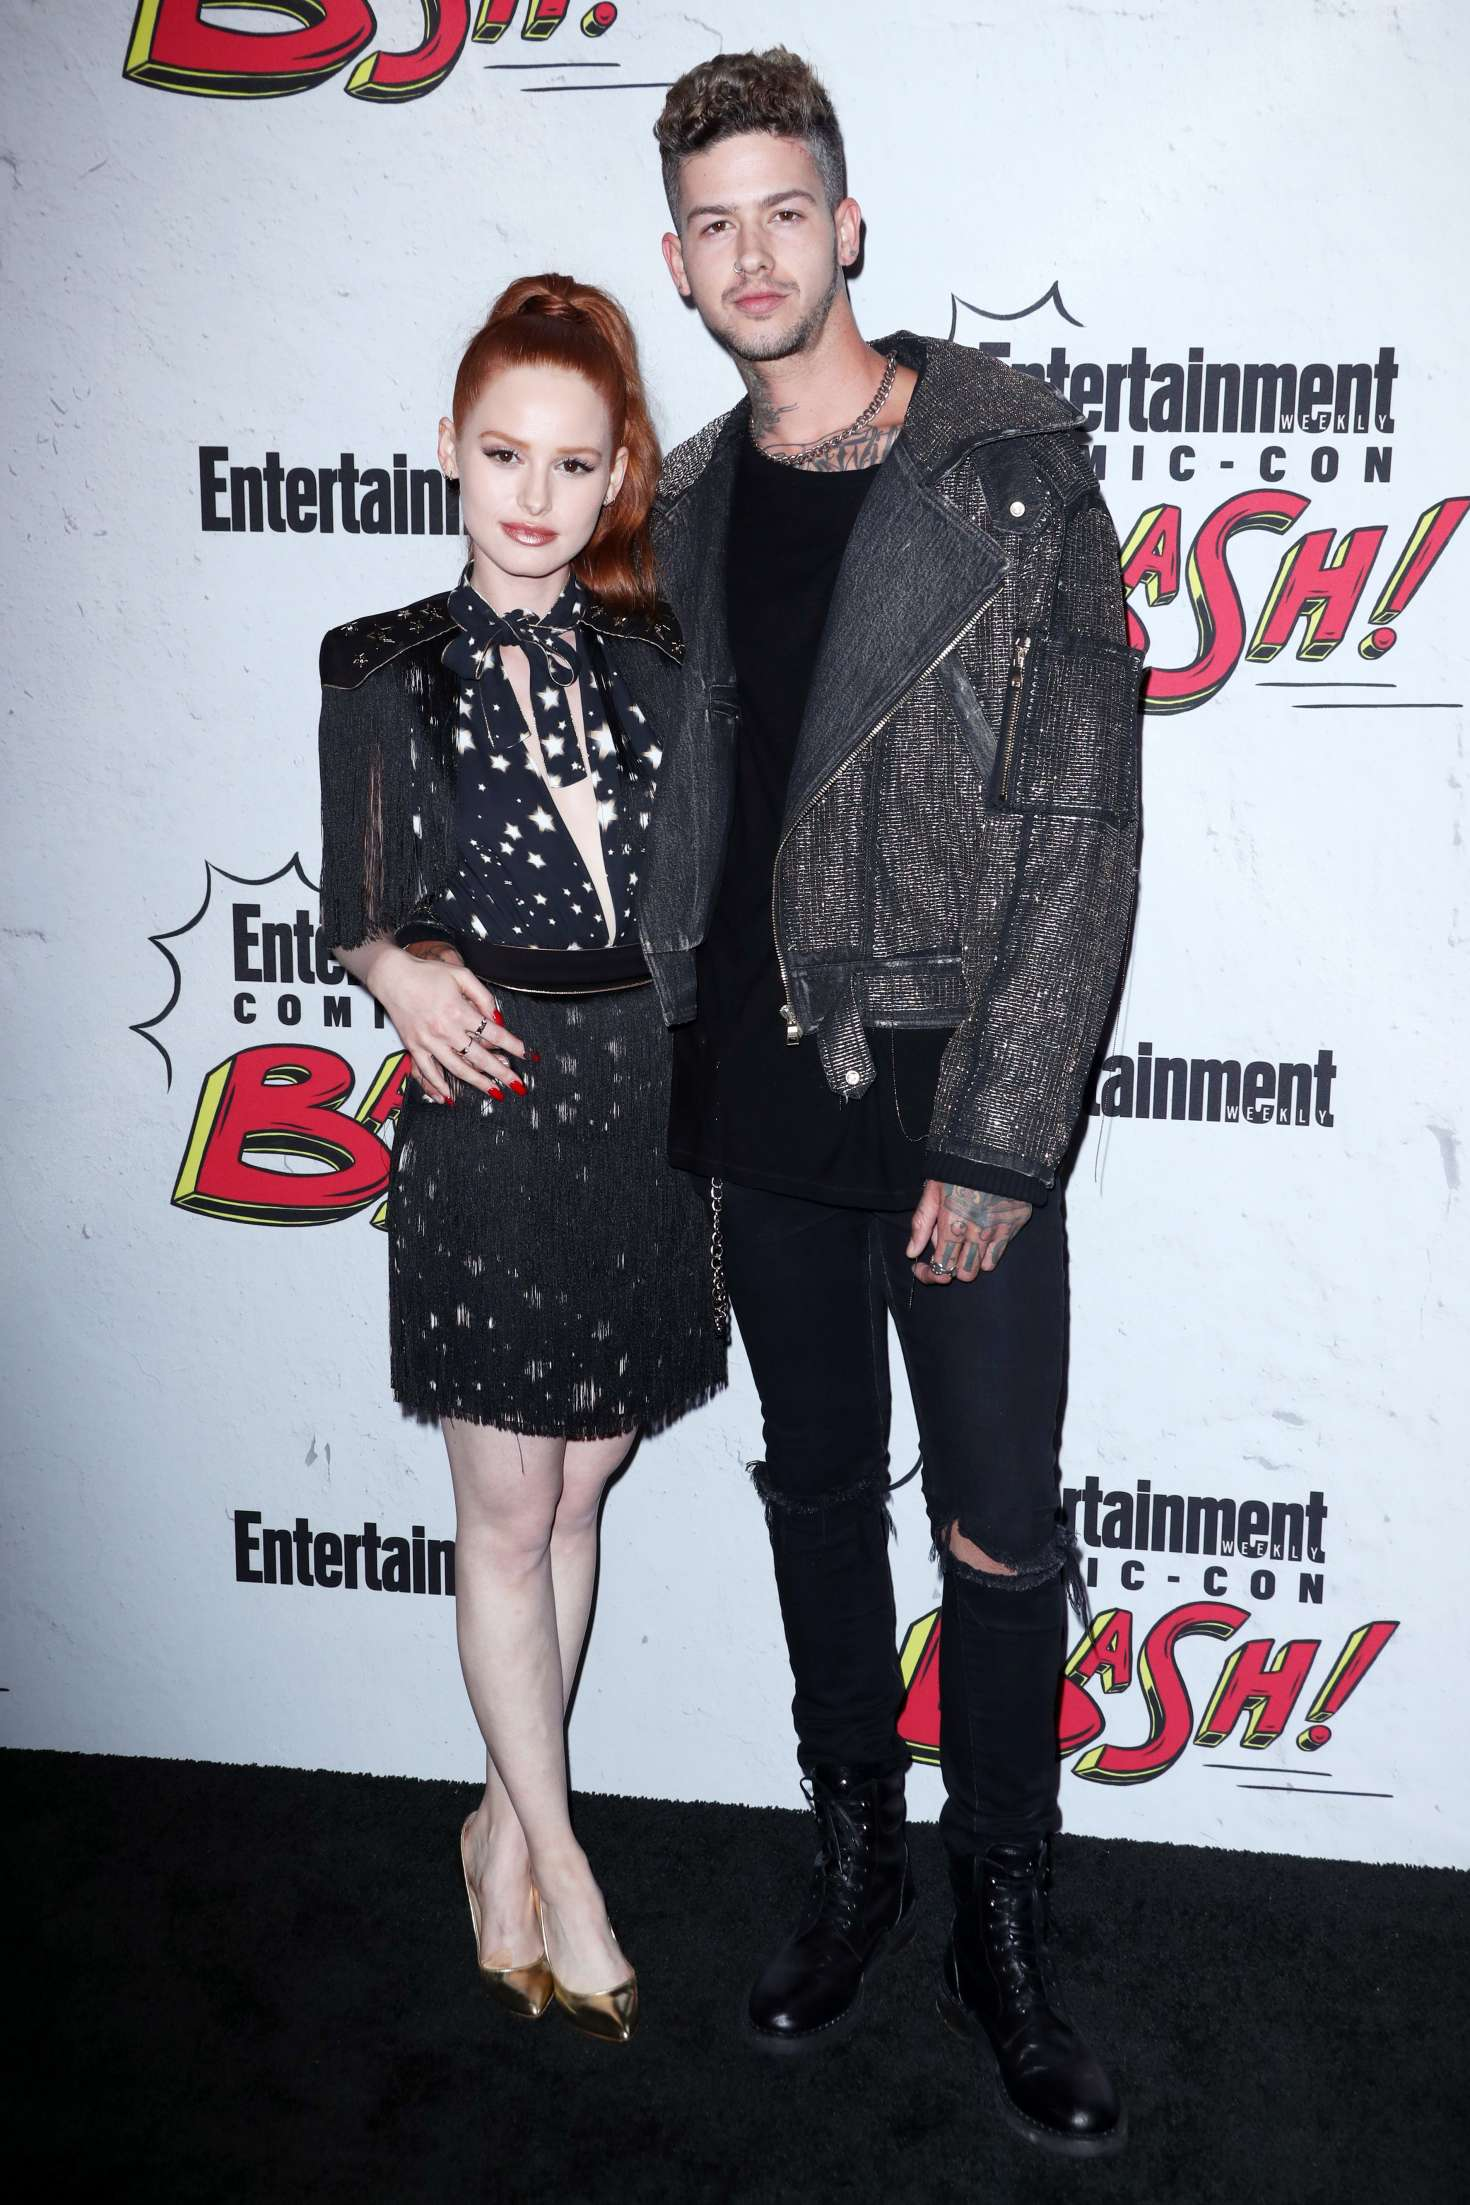 Madelaine Petsch 2017 : Madelaine Petsch: Entertainment Weekly Party at 2017 Comic-Con -09